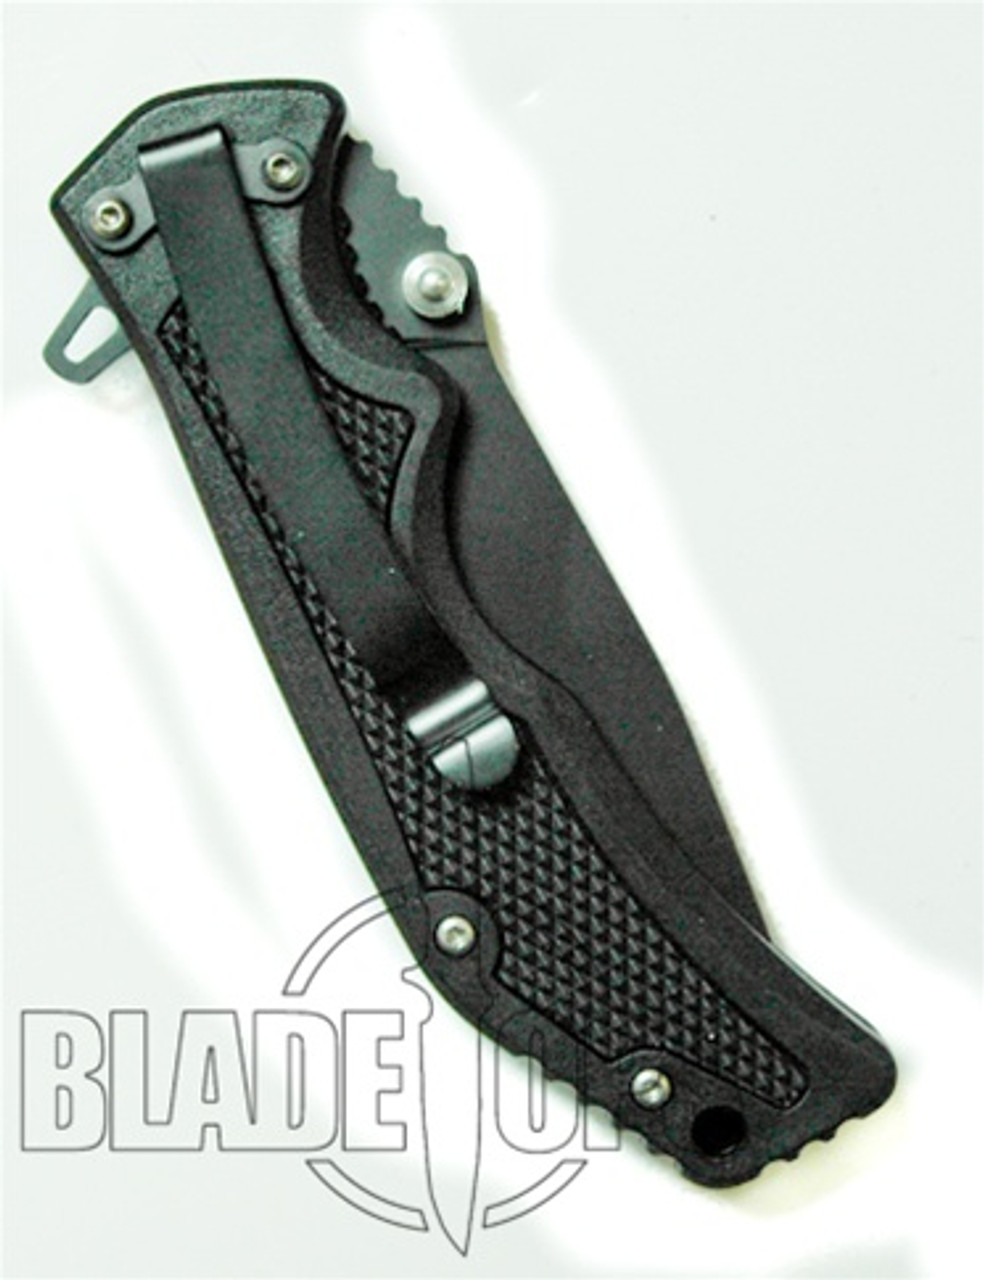 Blackjack Model 3 Tactical Drop Point Spring Assist Knife, Black, PLN, BJ038